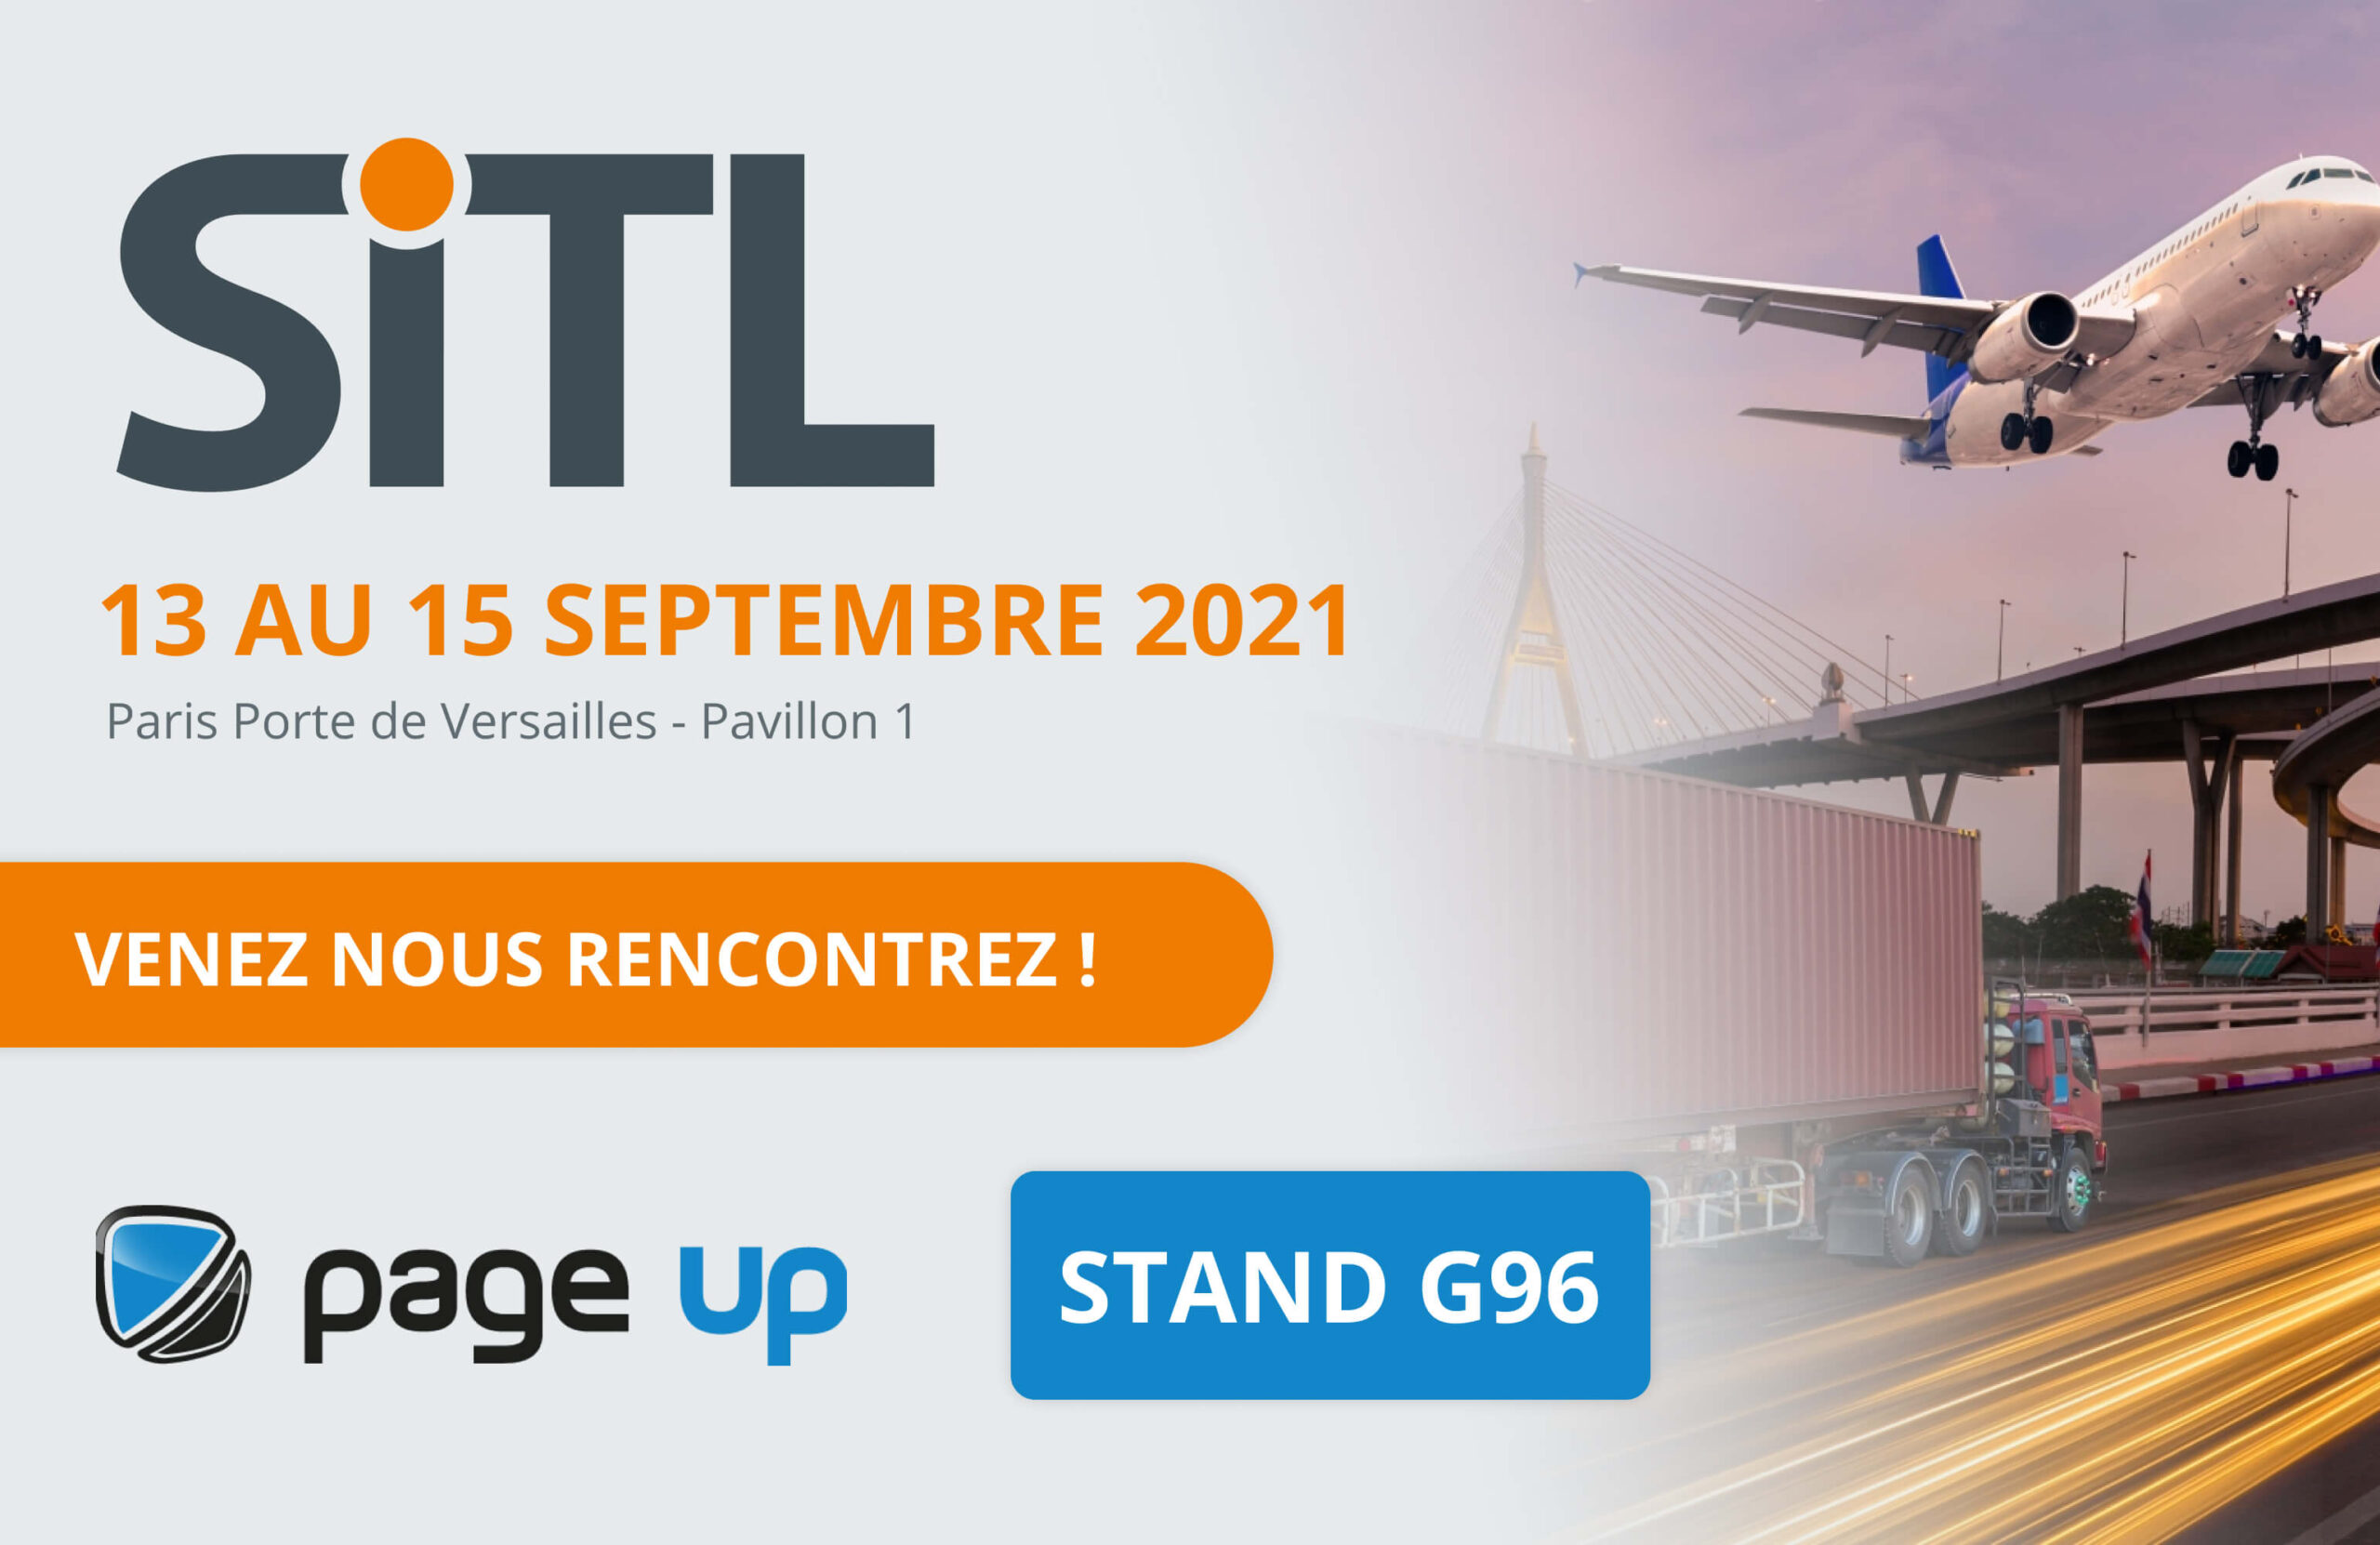 SITL 2021 - Page Up - Stand G96